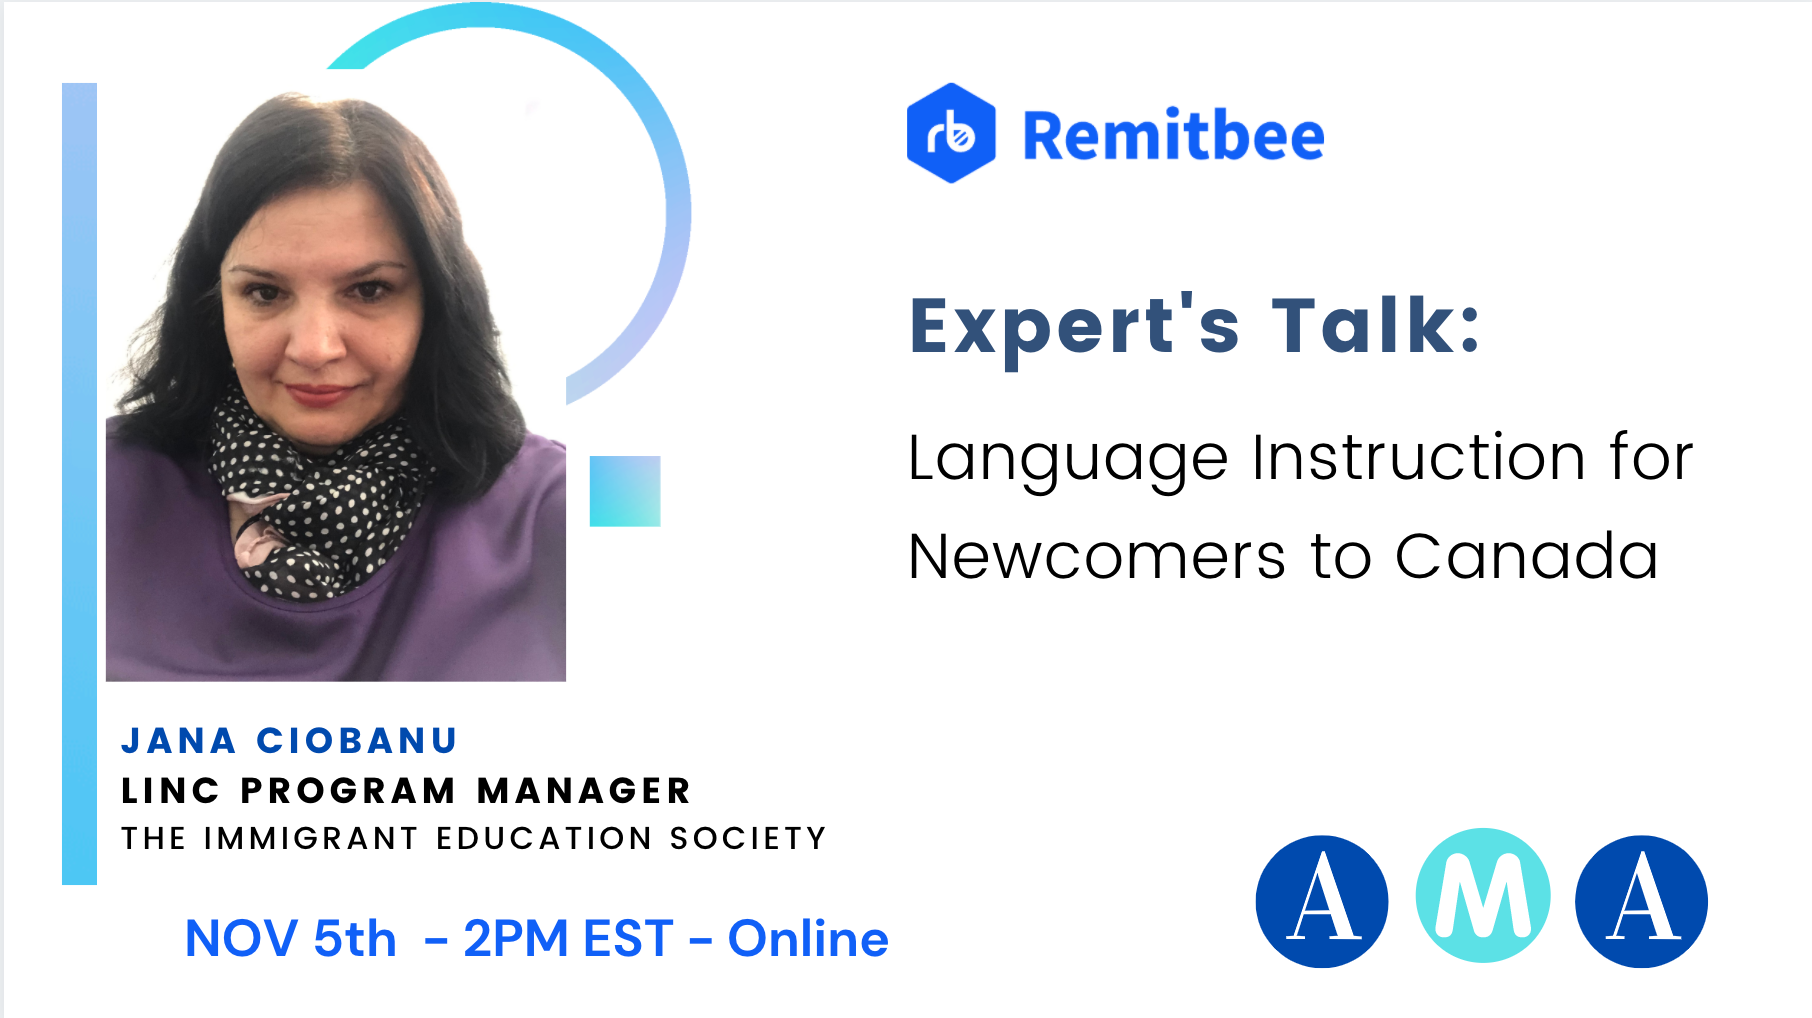 Remitbee Expert: Language Instruction for Newcomers to Canada